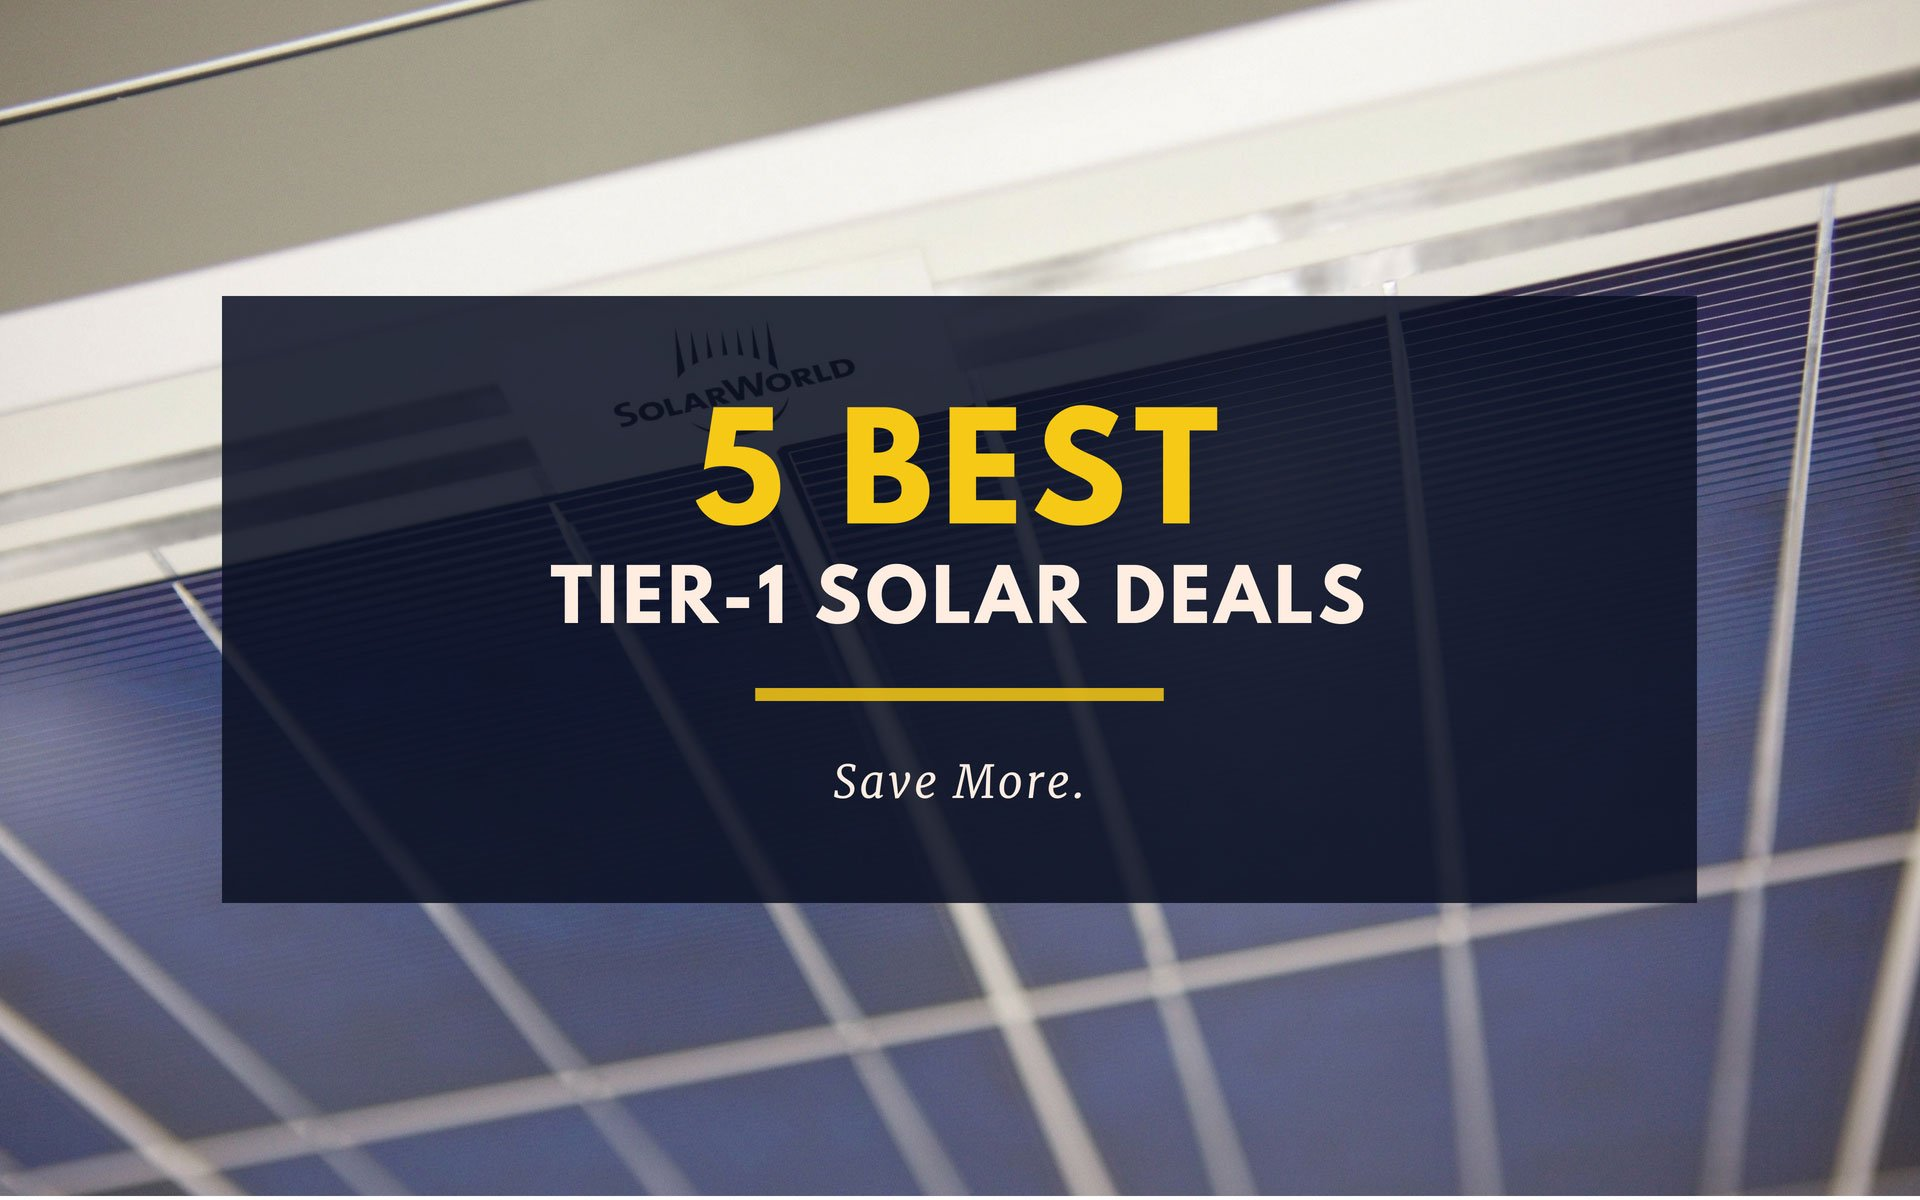 5 BEST Tier-1 Solar Deals Perth Solar Warehouse (PSW Energy)